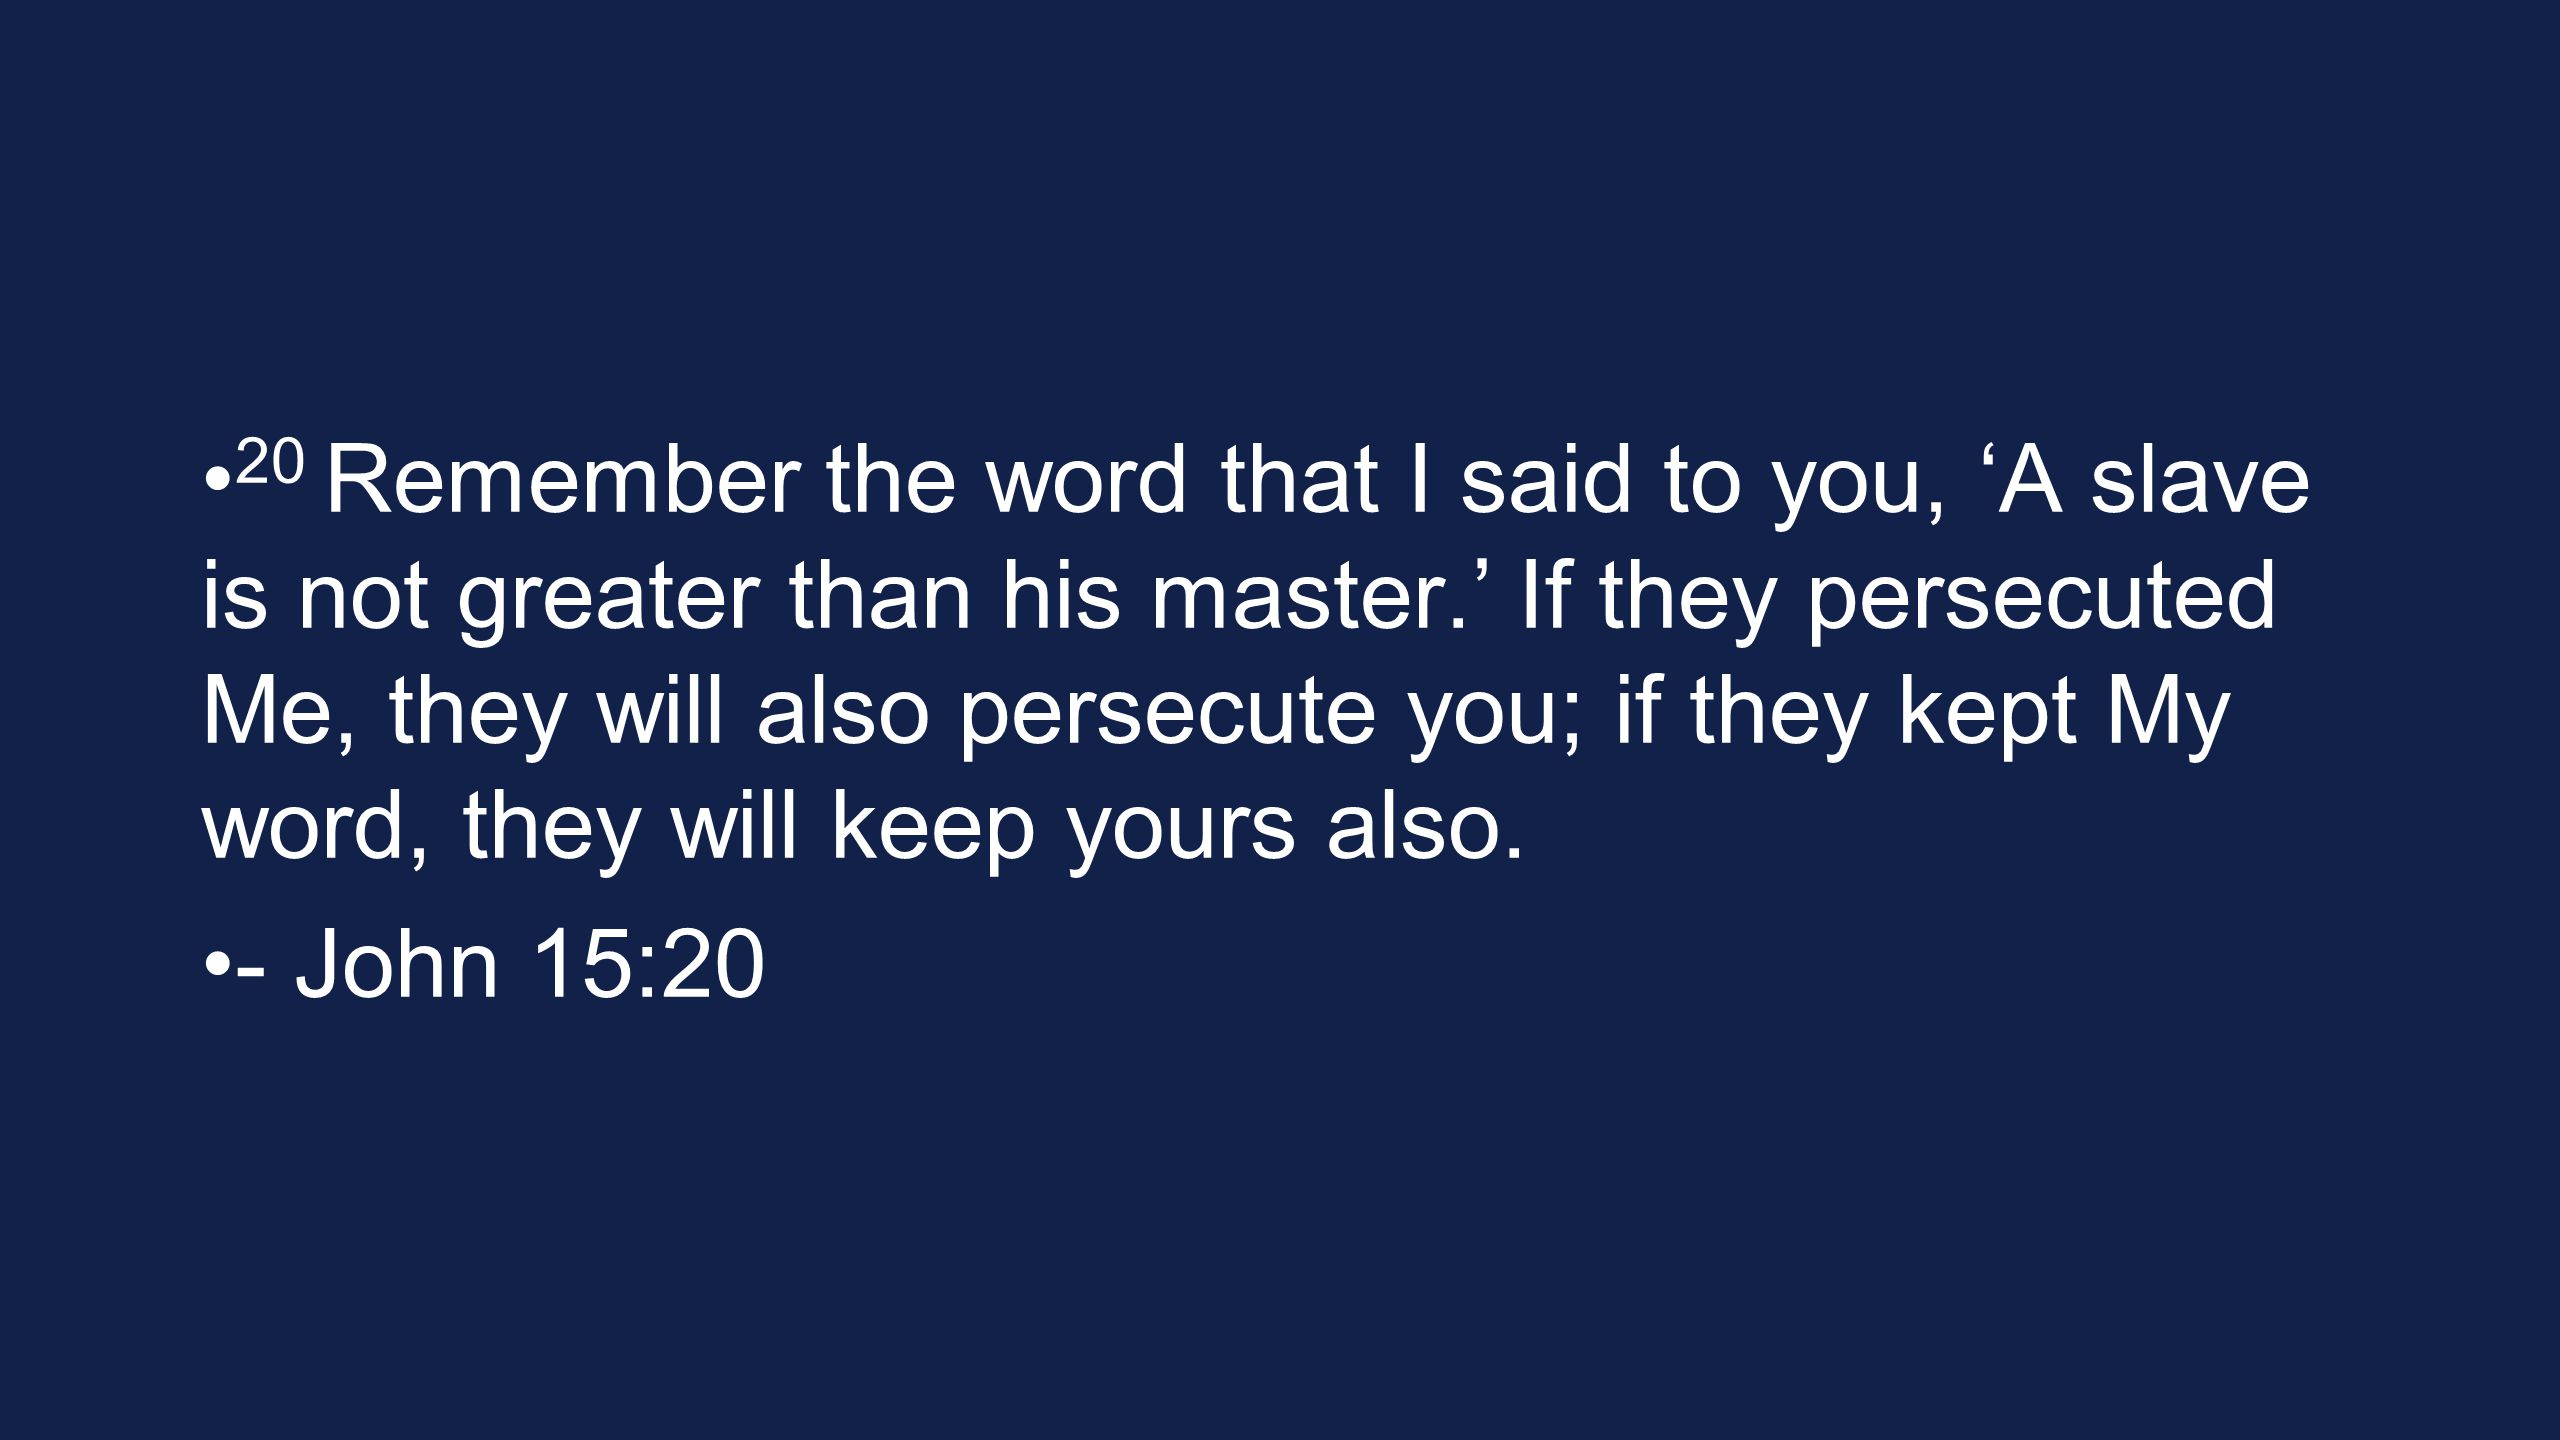 20 Remember the word that I said to you, 'A slave is not greater than his master.' If they persecuted Me, they will also persecute you; if they kept My word, they will keep yours also.